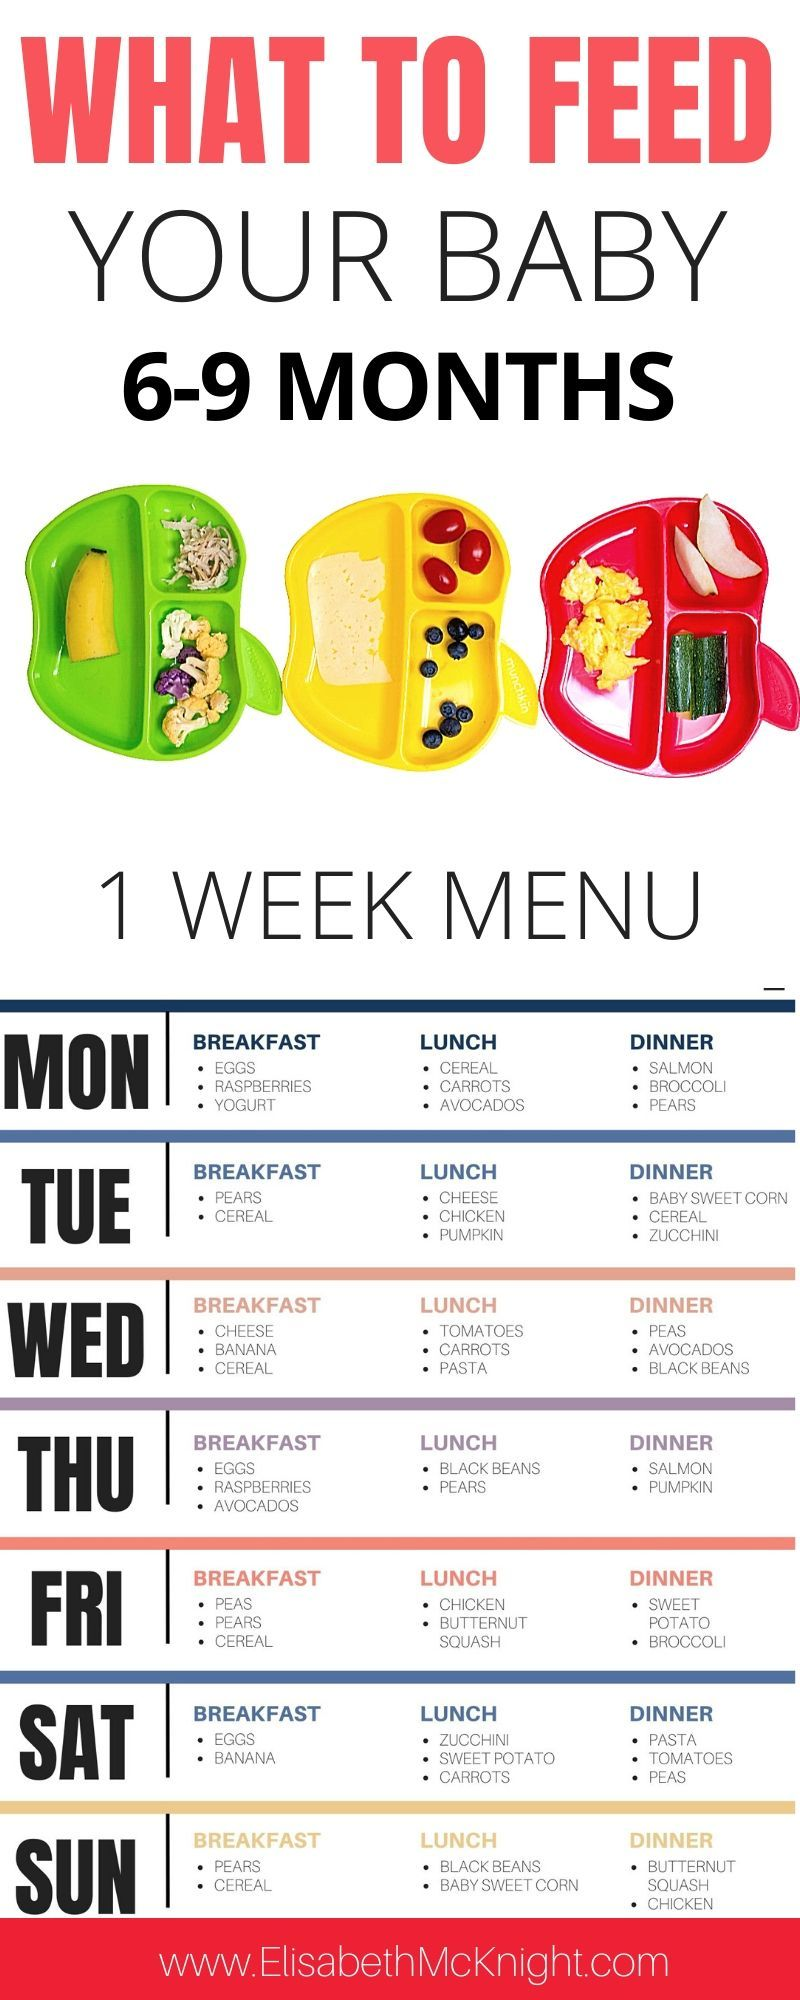 baby led weaning first foods 7 months